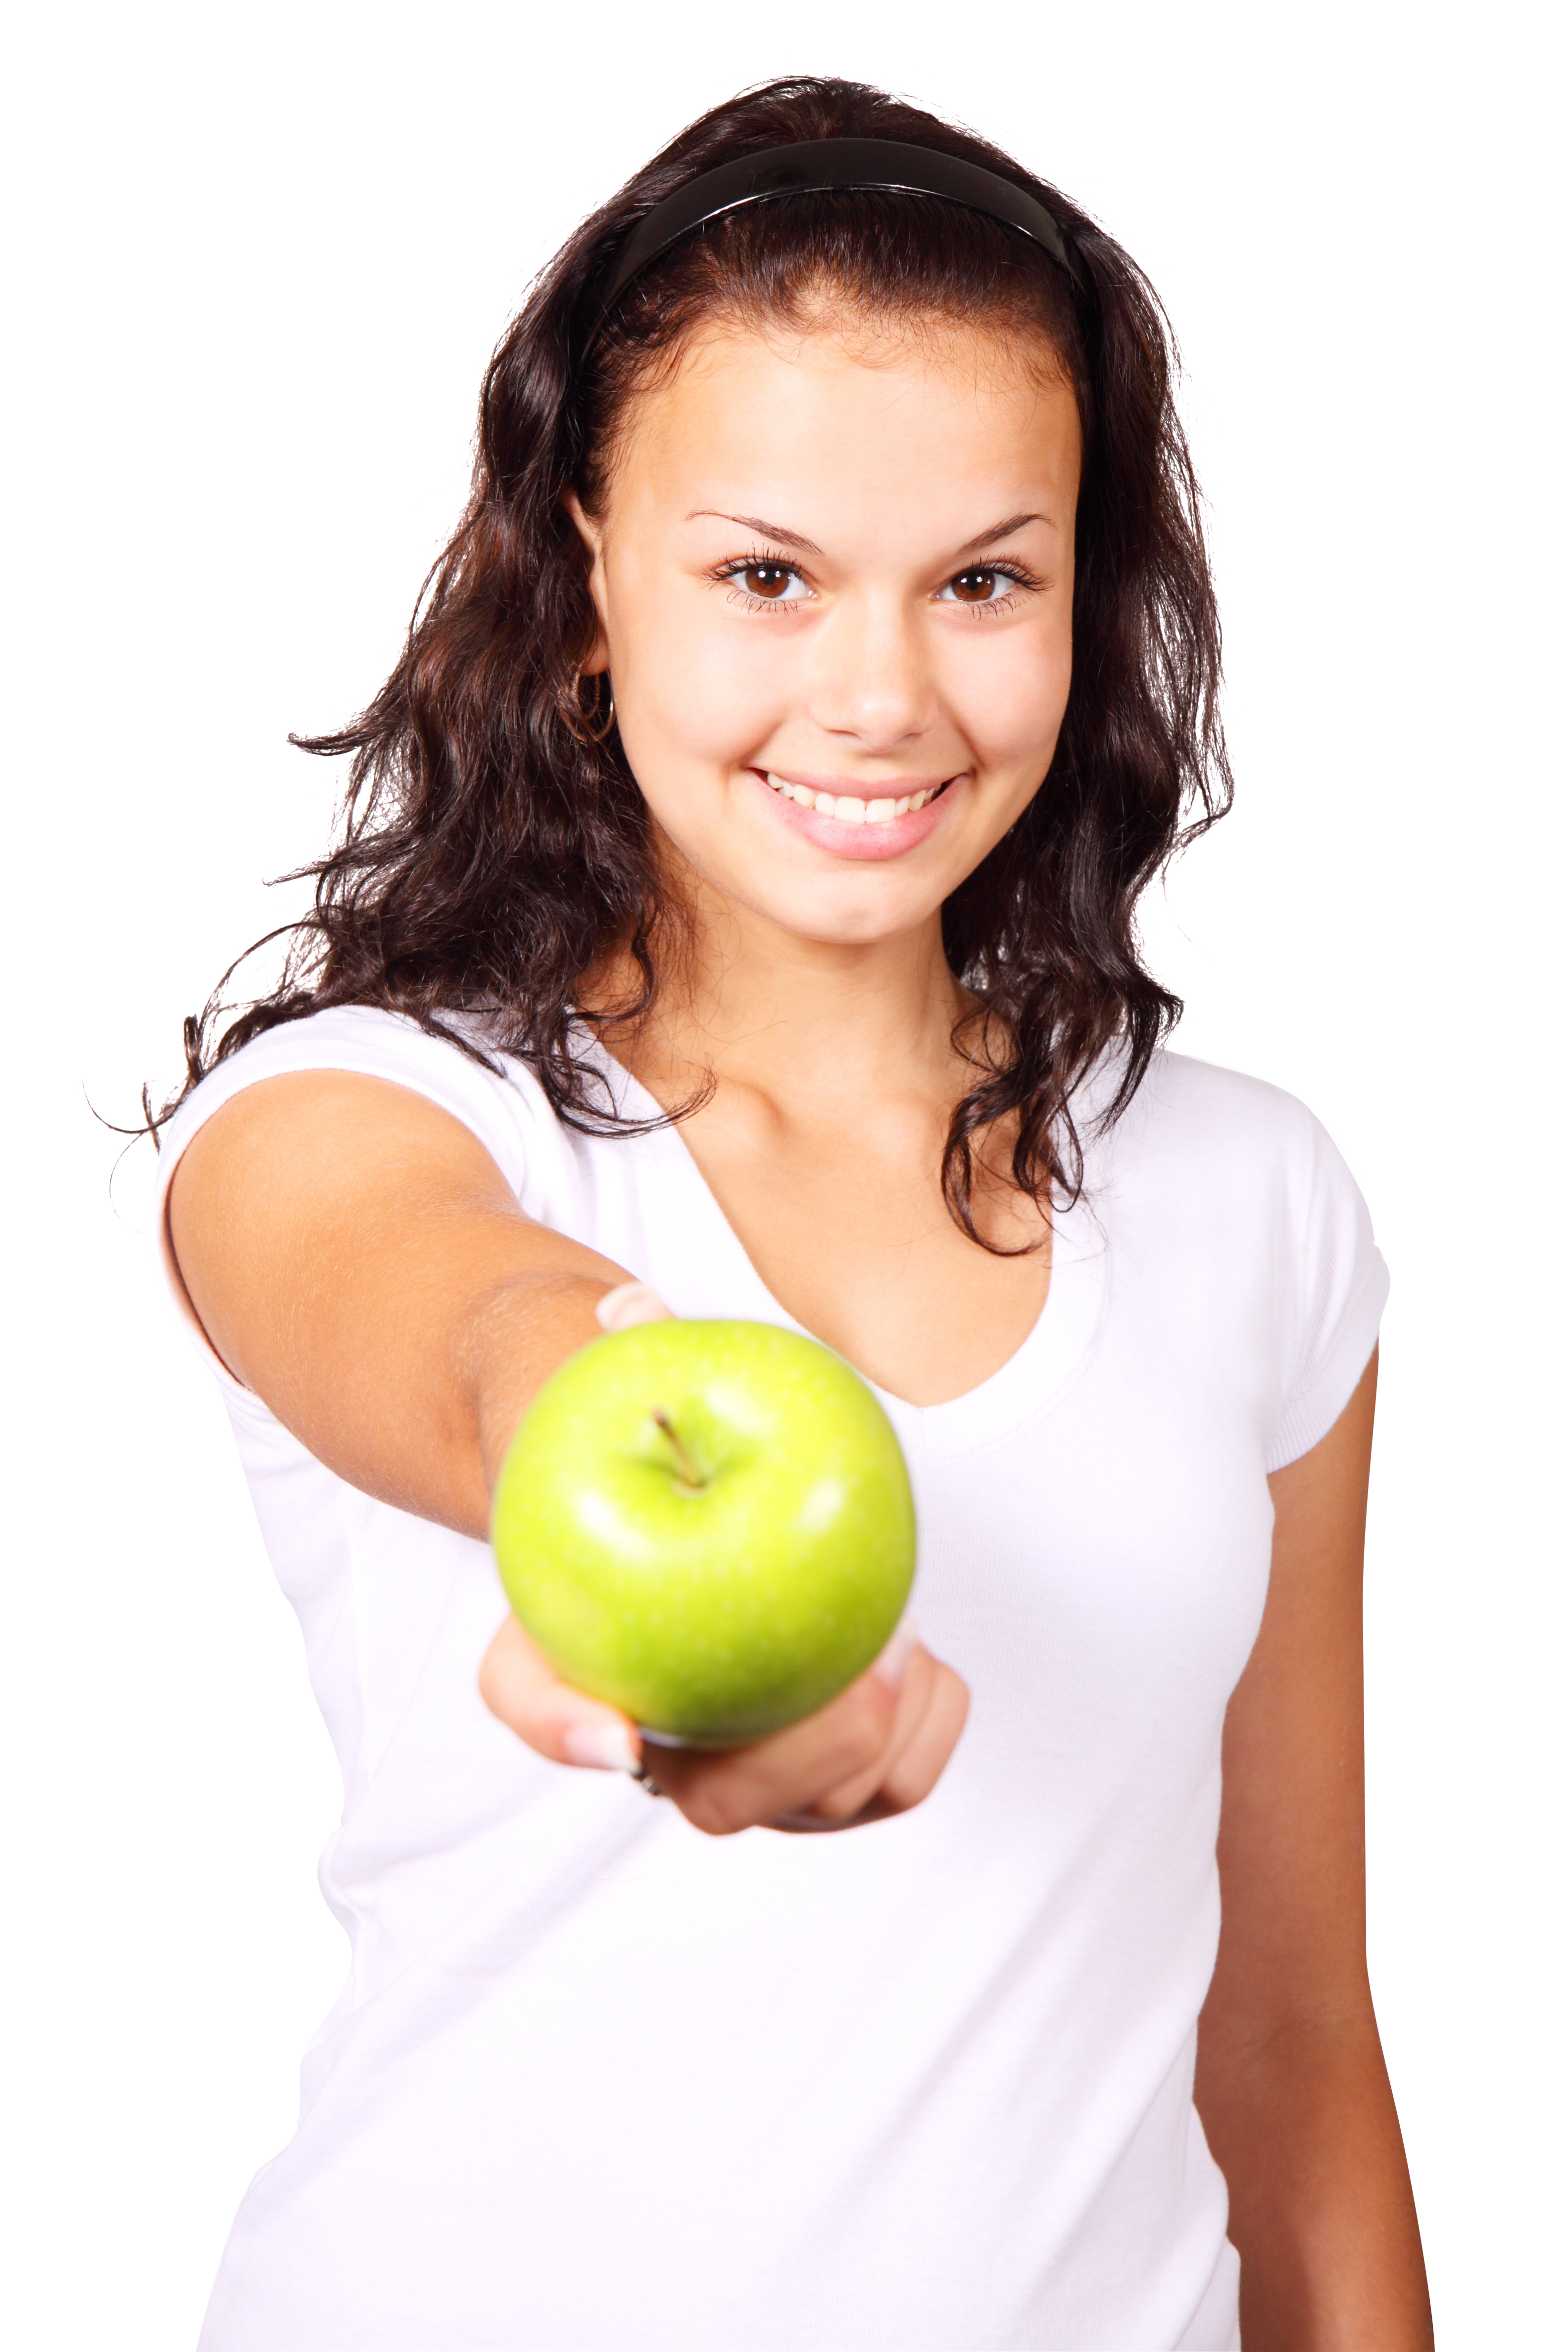 A girl hold apple in her hand